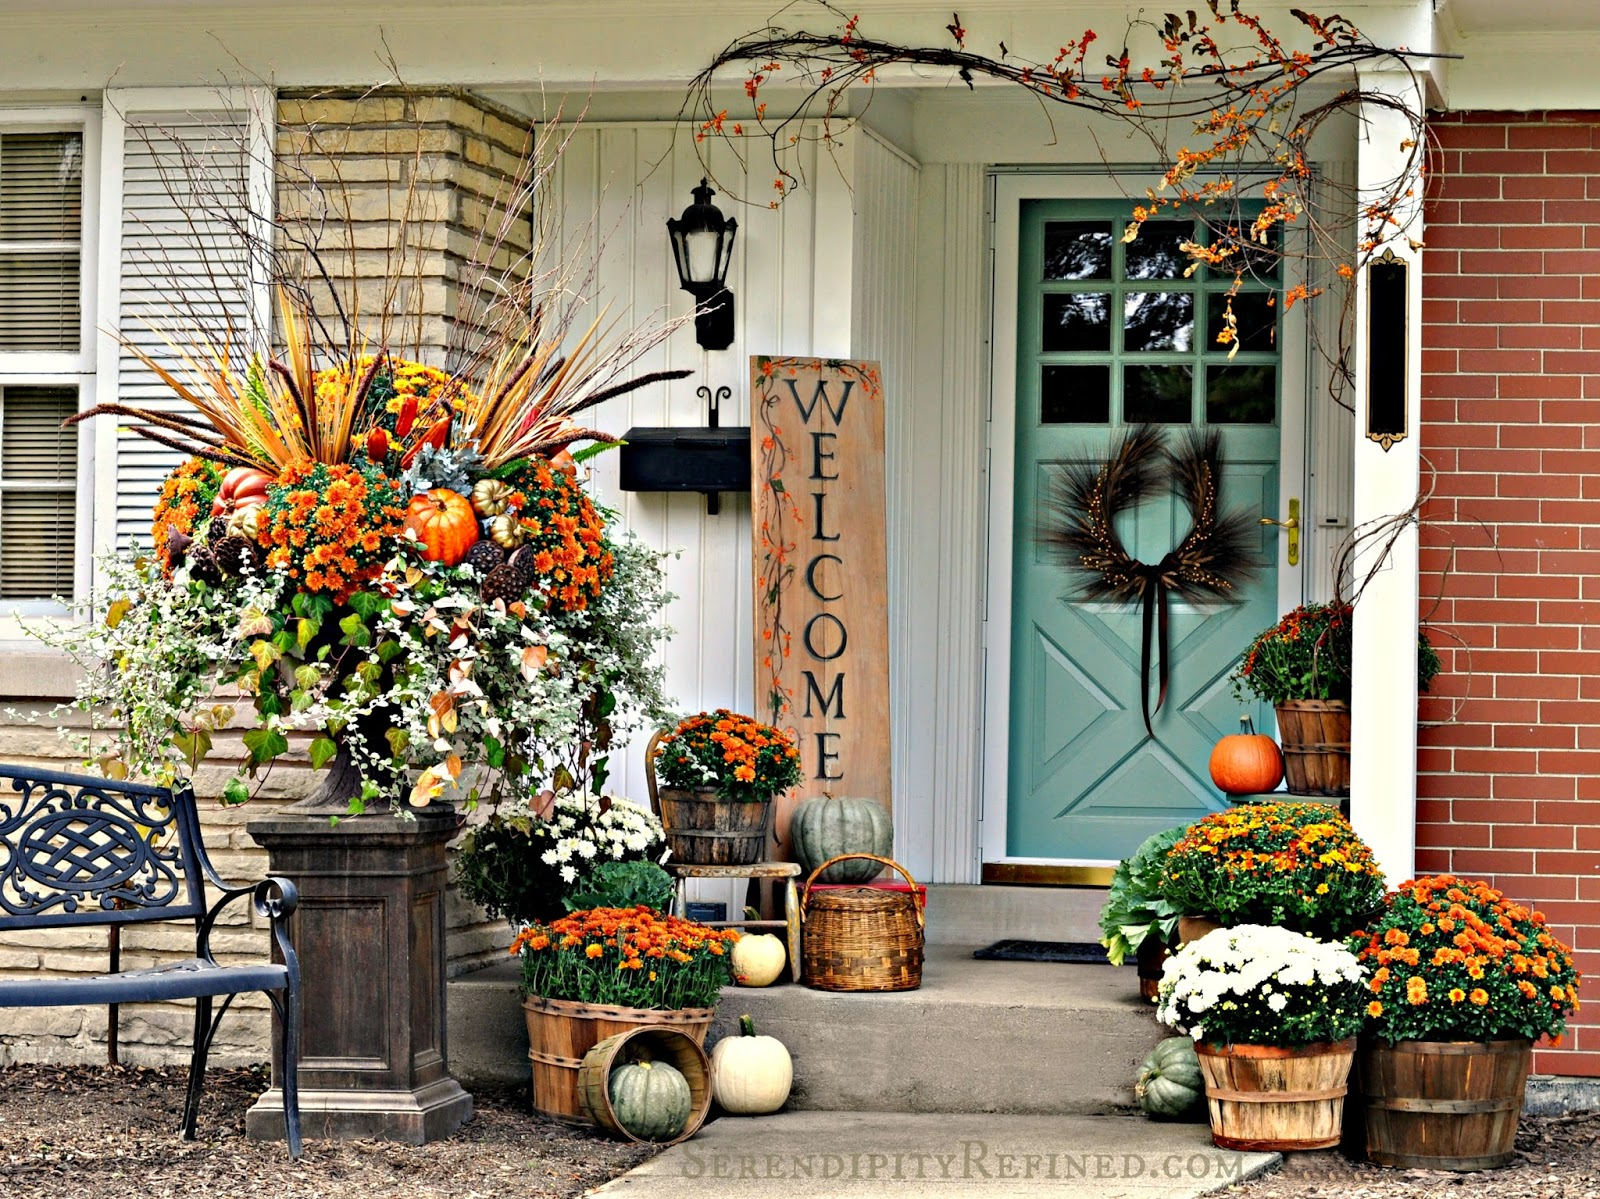 Fabulous outdoor decorating tips and ideas for fall zing Small front porch decorating ideas for fall